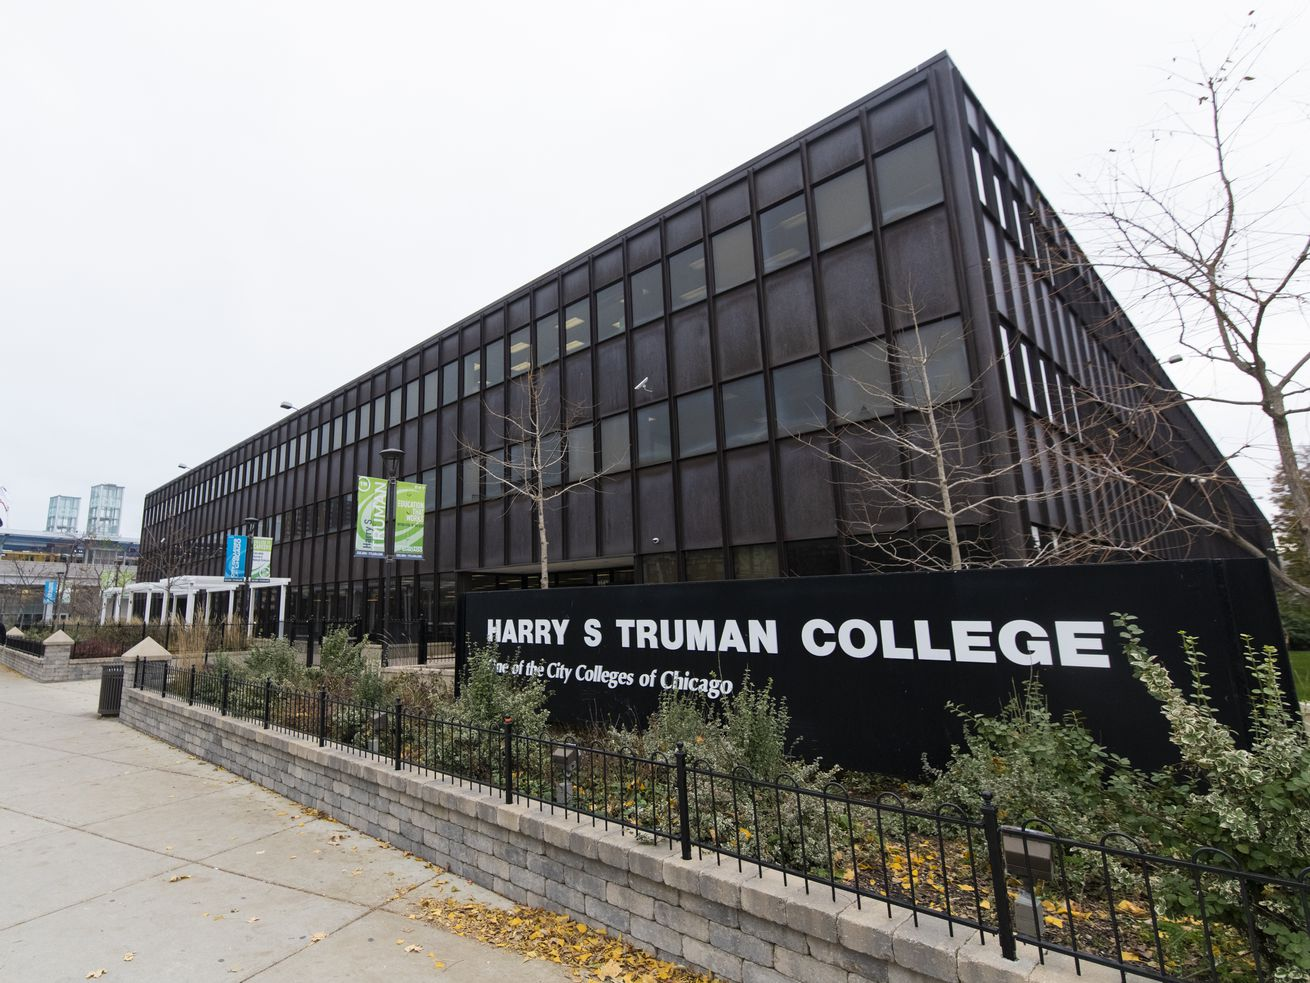 Harry S Truman College, one of the City Colleges of Chicago in Uptown.